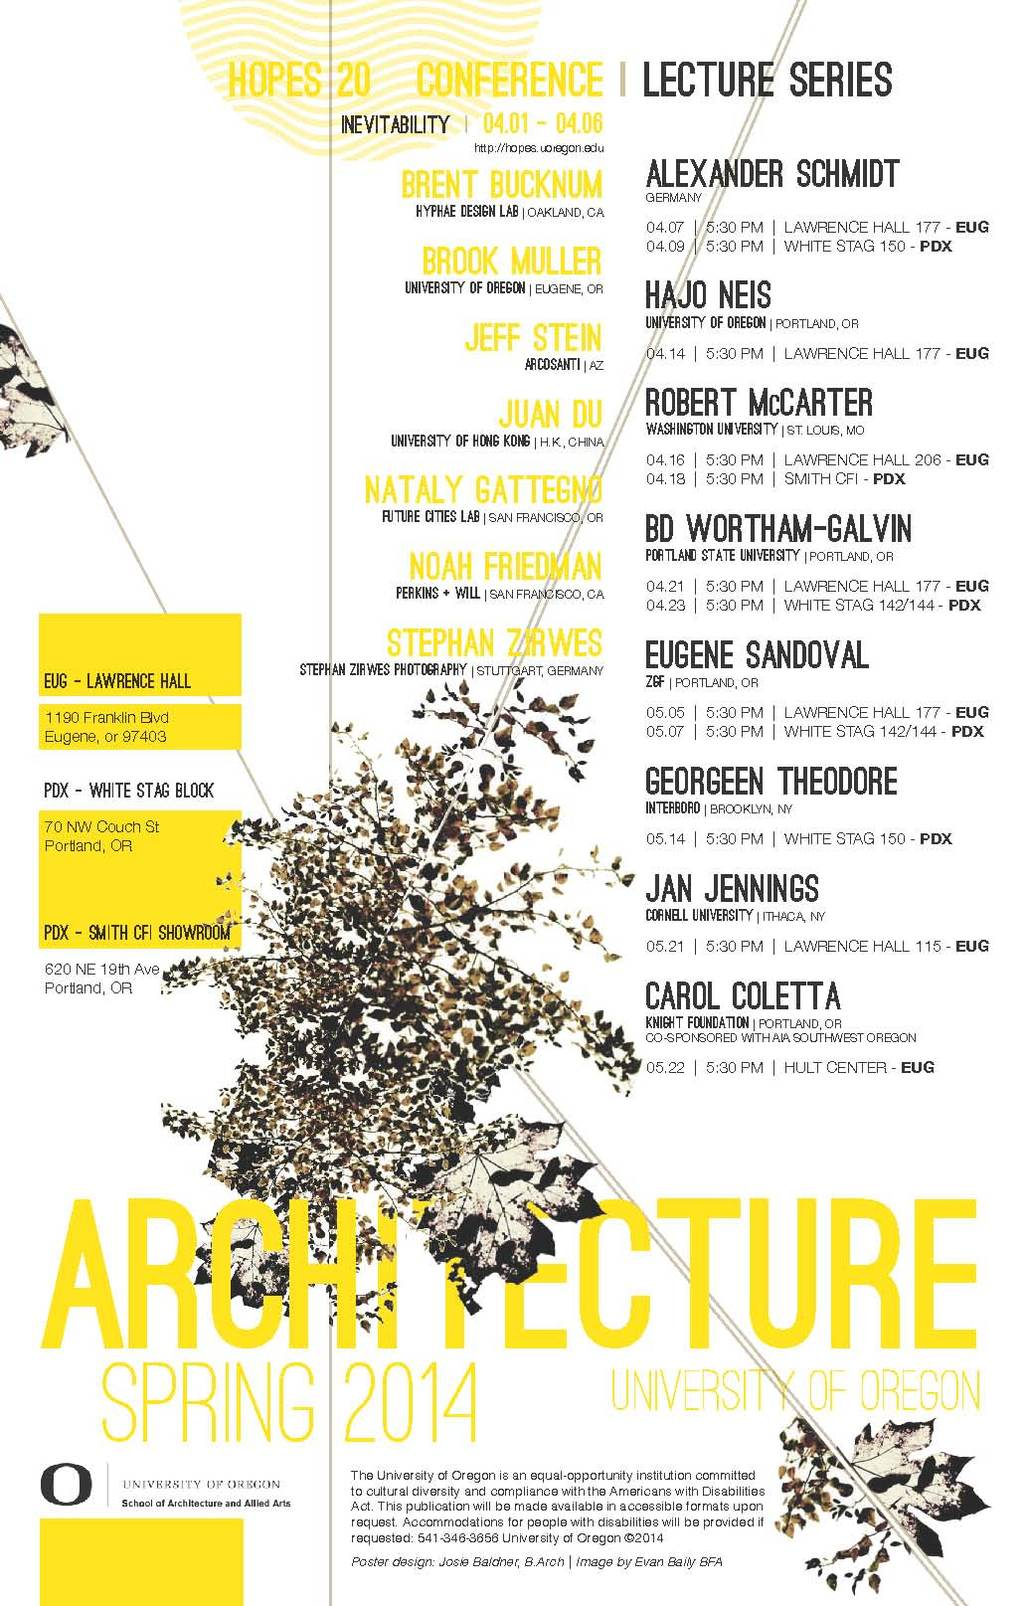 U. Oregon Spring 14 Lectures and Events. Poster design: Josie Baldner, B.Arch. Image: Evan Baily BFA